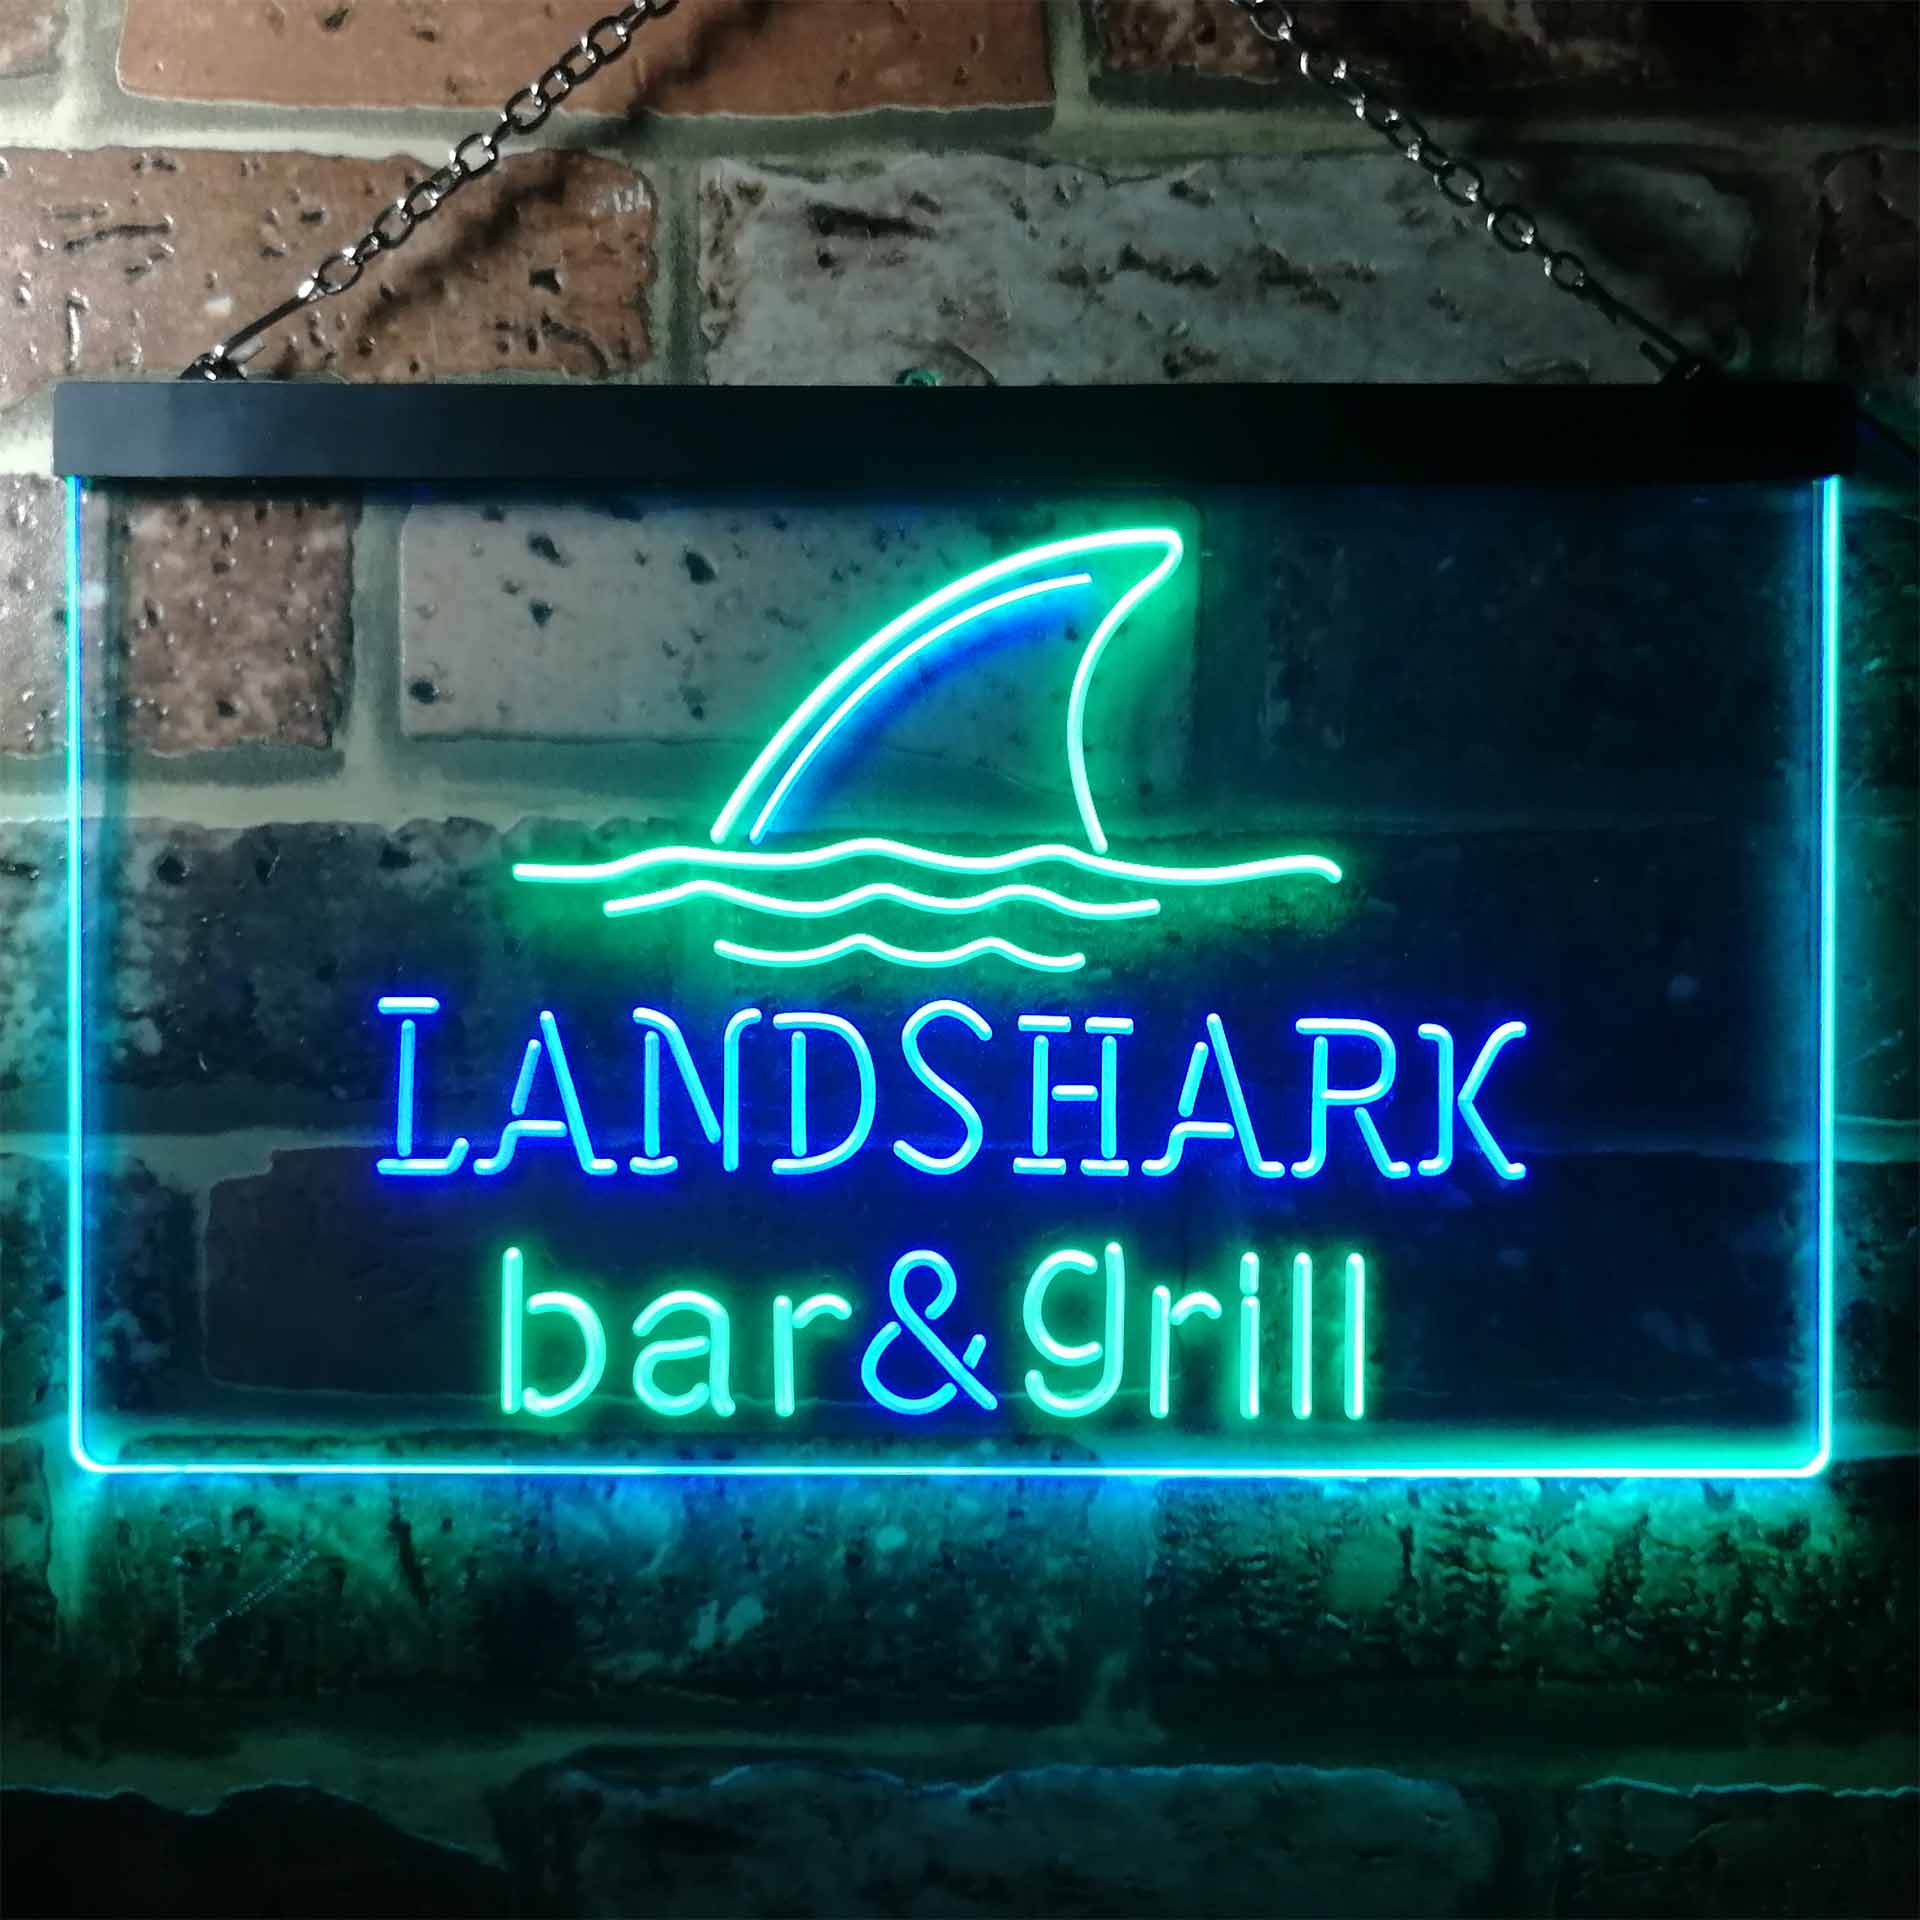 Landshark Bar and Grill Dual Color LED Neon Sign ProLedSign